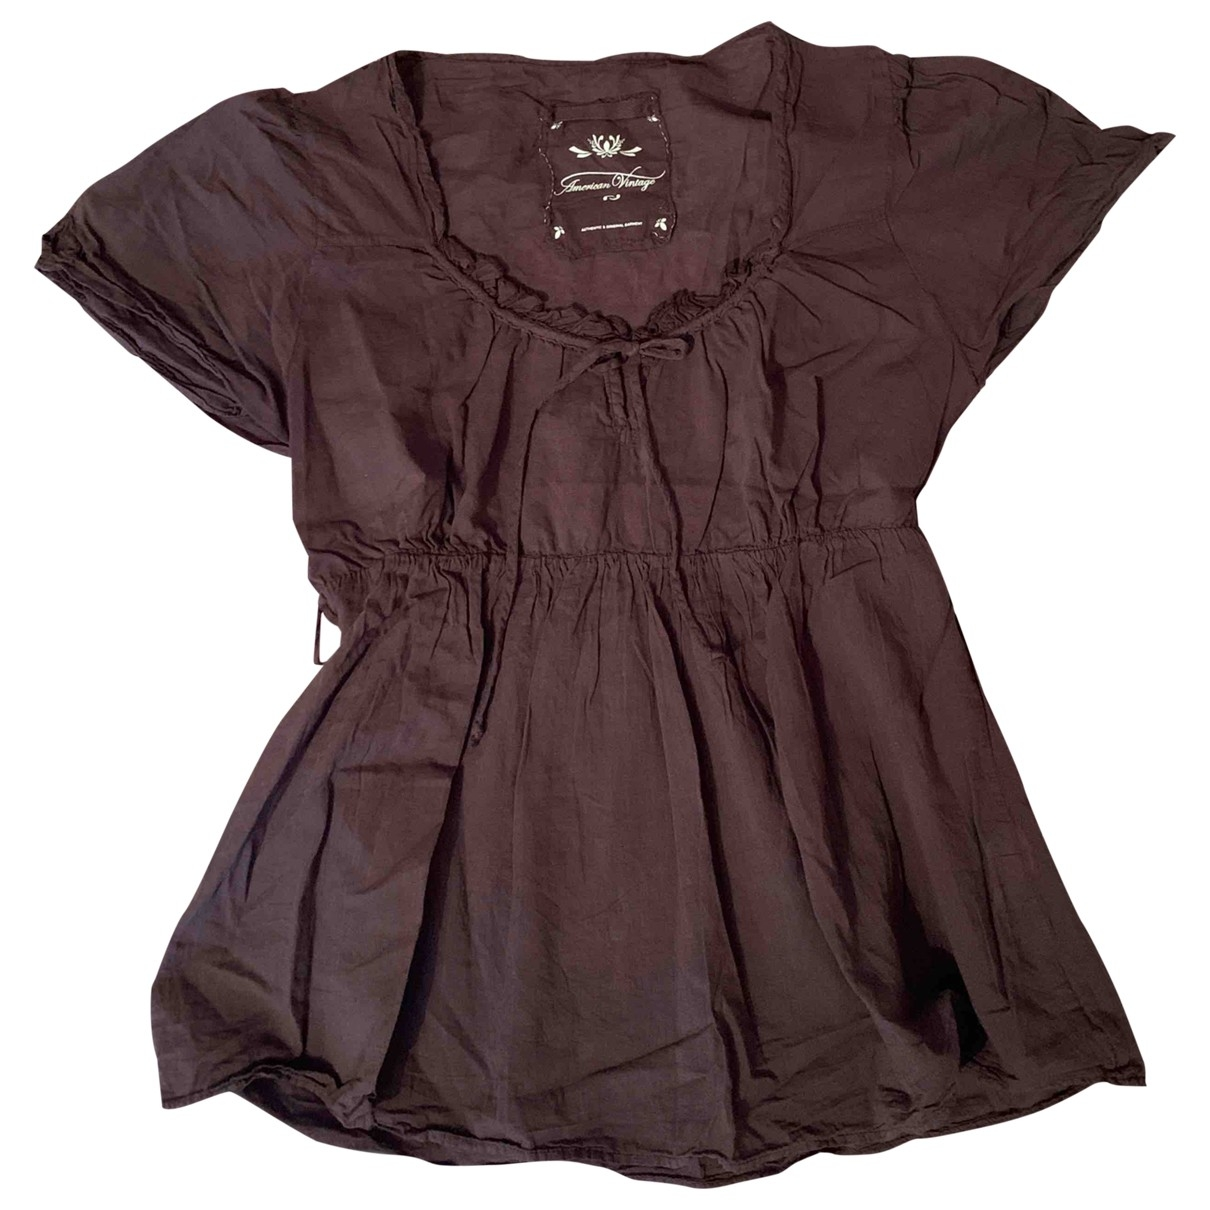 American Vintage \N Brown Cotton  top for Women 38 FR